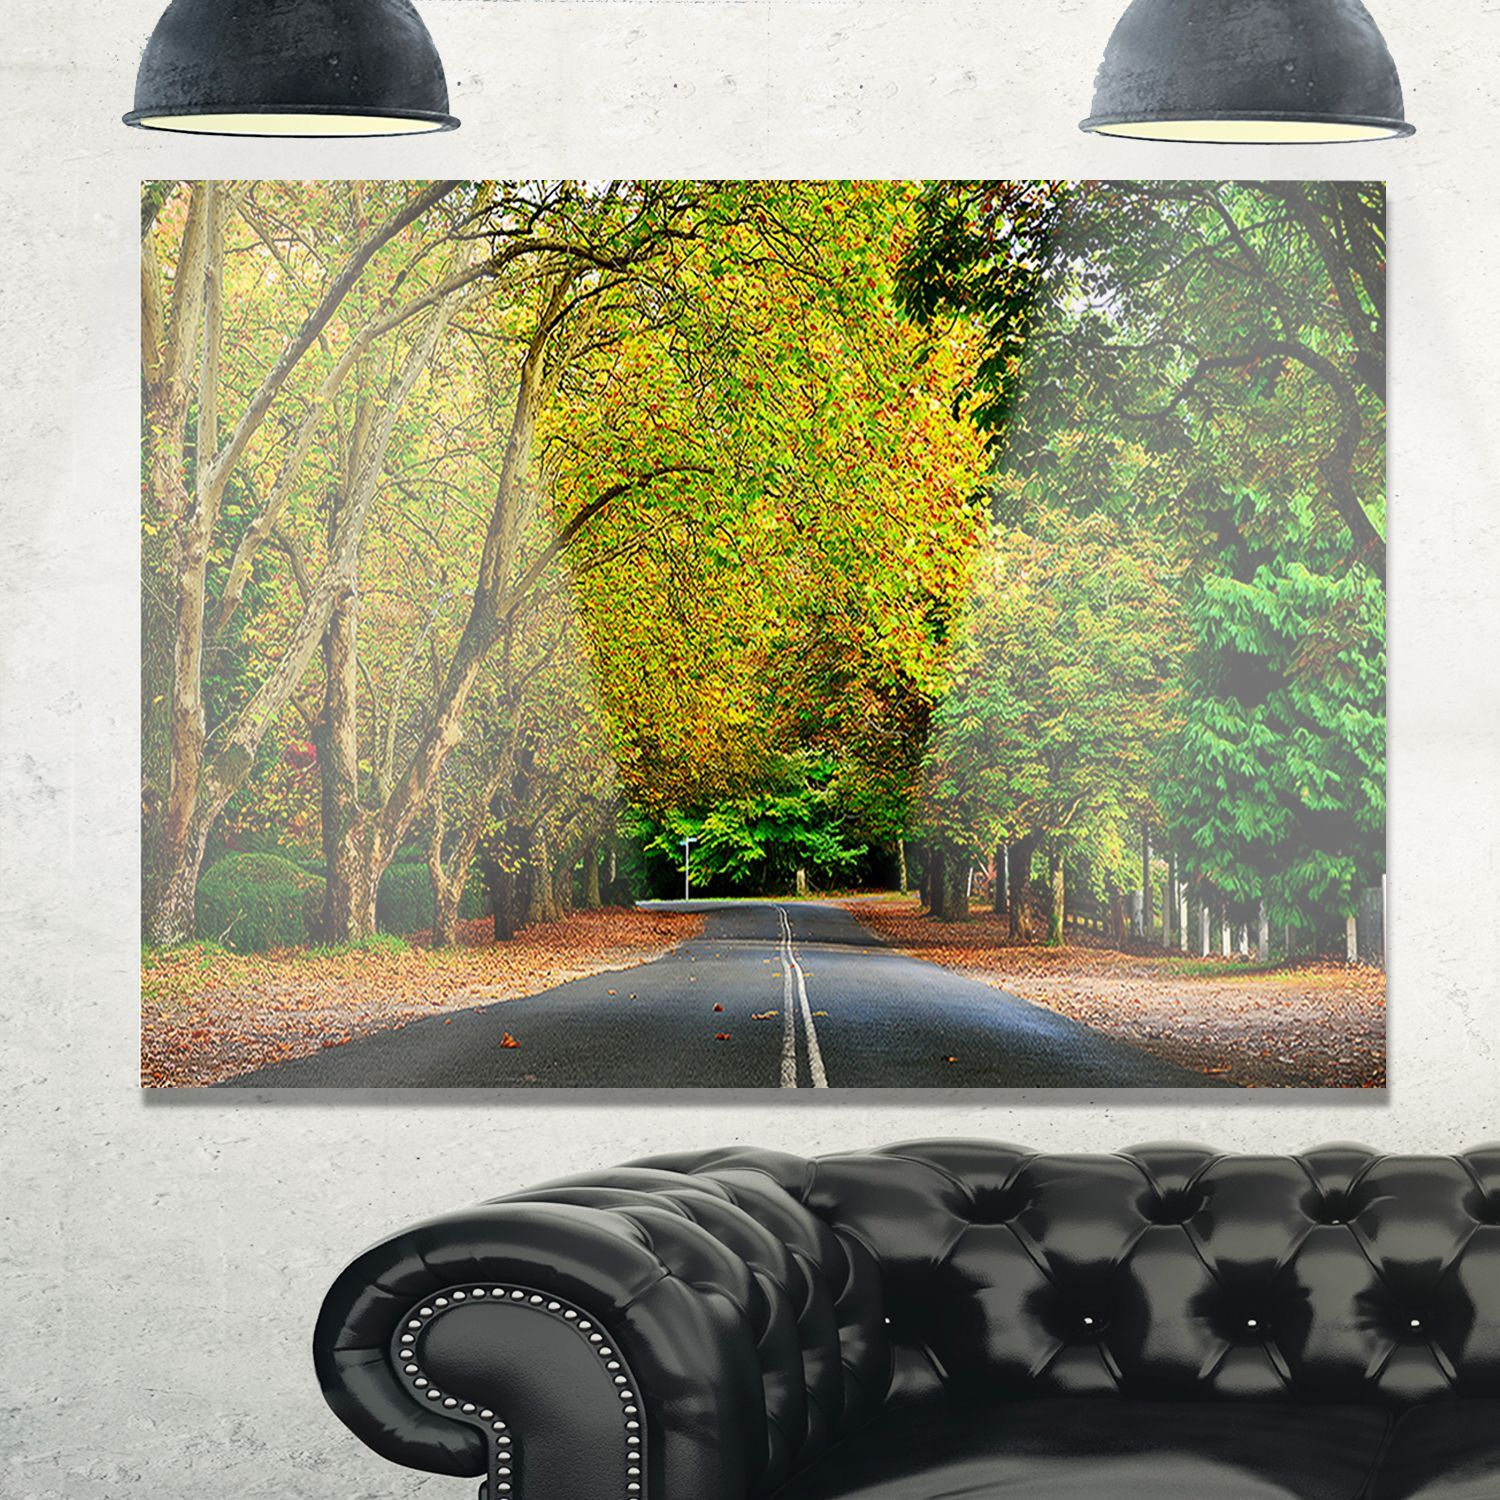 Road through Stunning Greenery - Landscape Glossy Metal Wall Art by ...